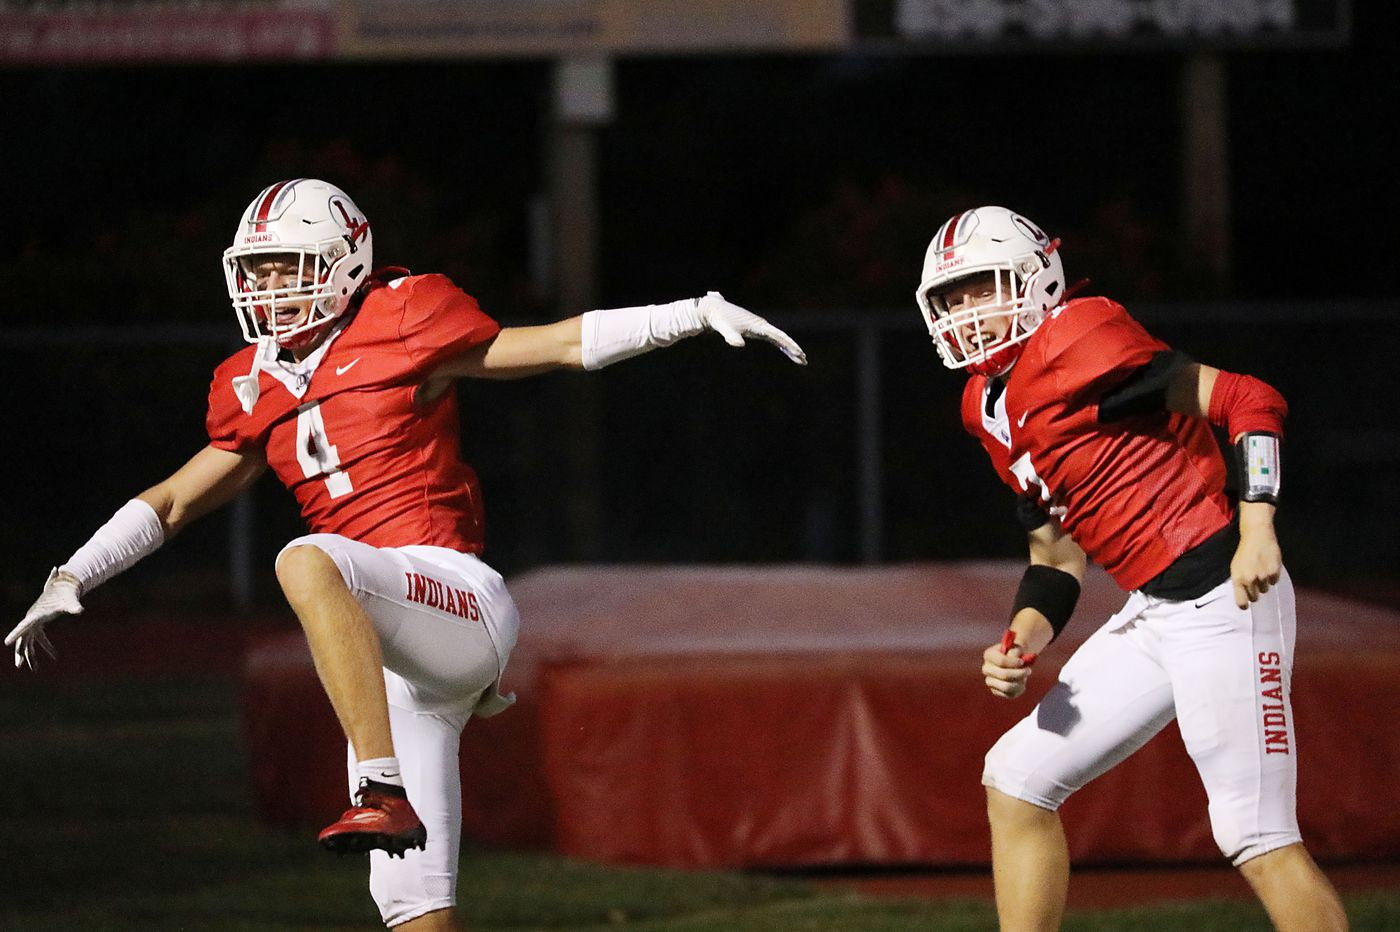 South Jersey football rankings: Lenape, West Deptford rise in Week 2